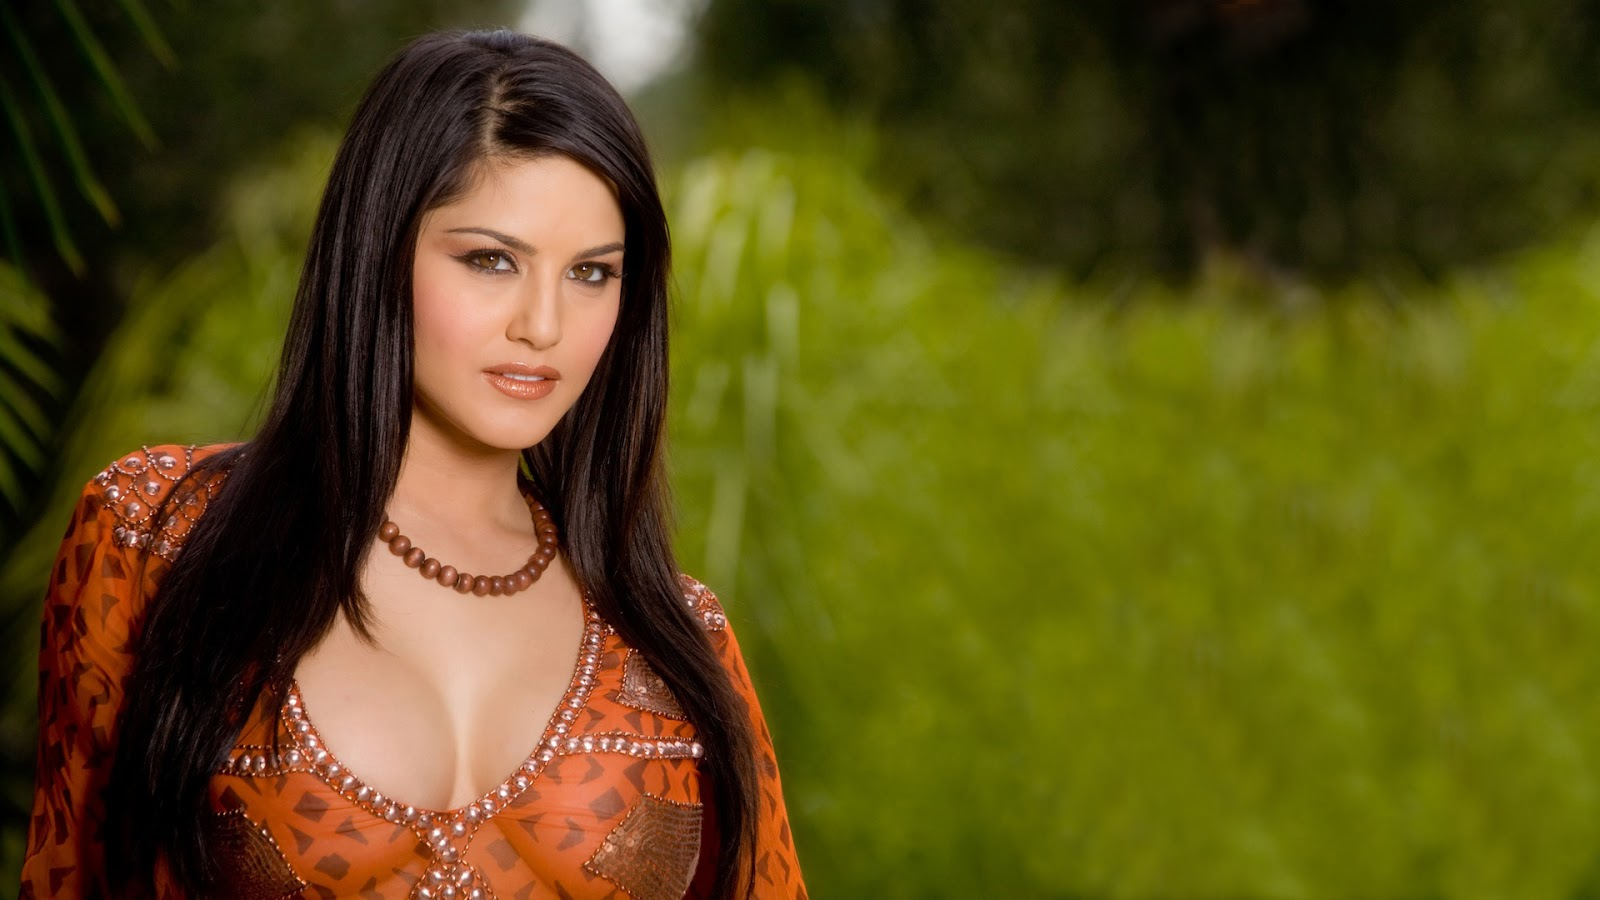 Cool funny pictures sunny leone non nude but hot full hd wallpapers - Sunny leone full hd wallpaper ...